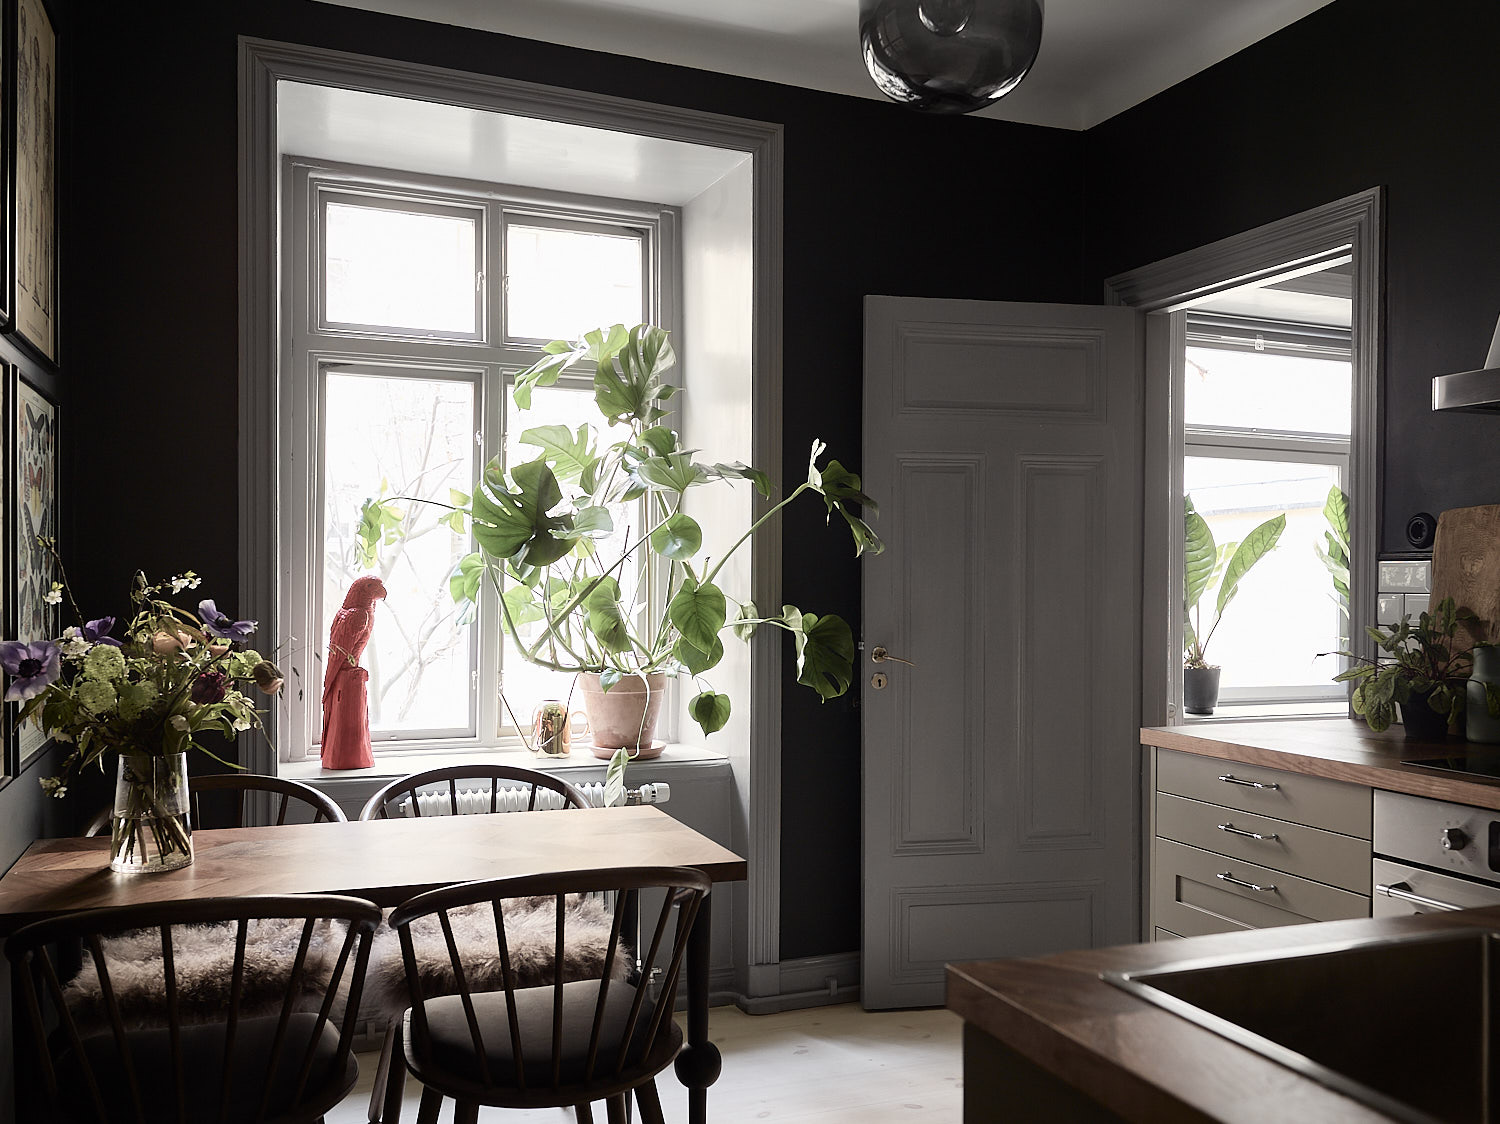 Stylish Home: Stylish And Cozy Home With Dark Walls